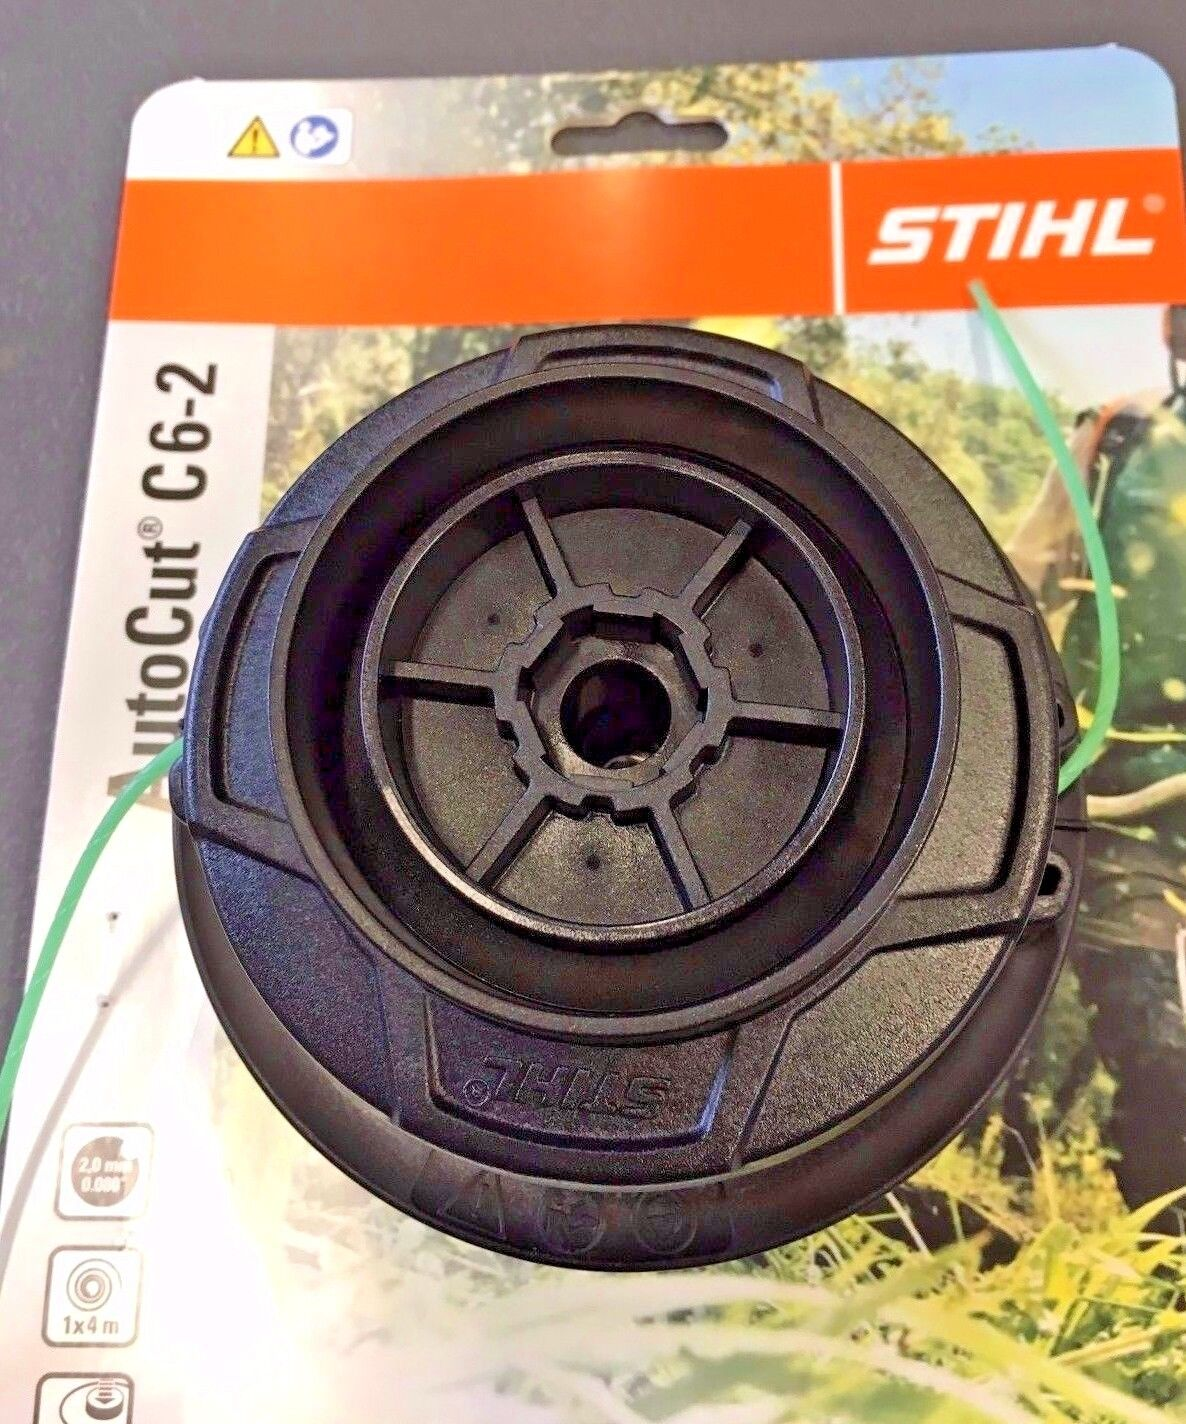 Double LINED STRIMMER HEAD Trimmer Head For Stihl AUTOCUT C6-2 Weed Grass Eater